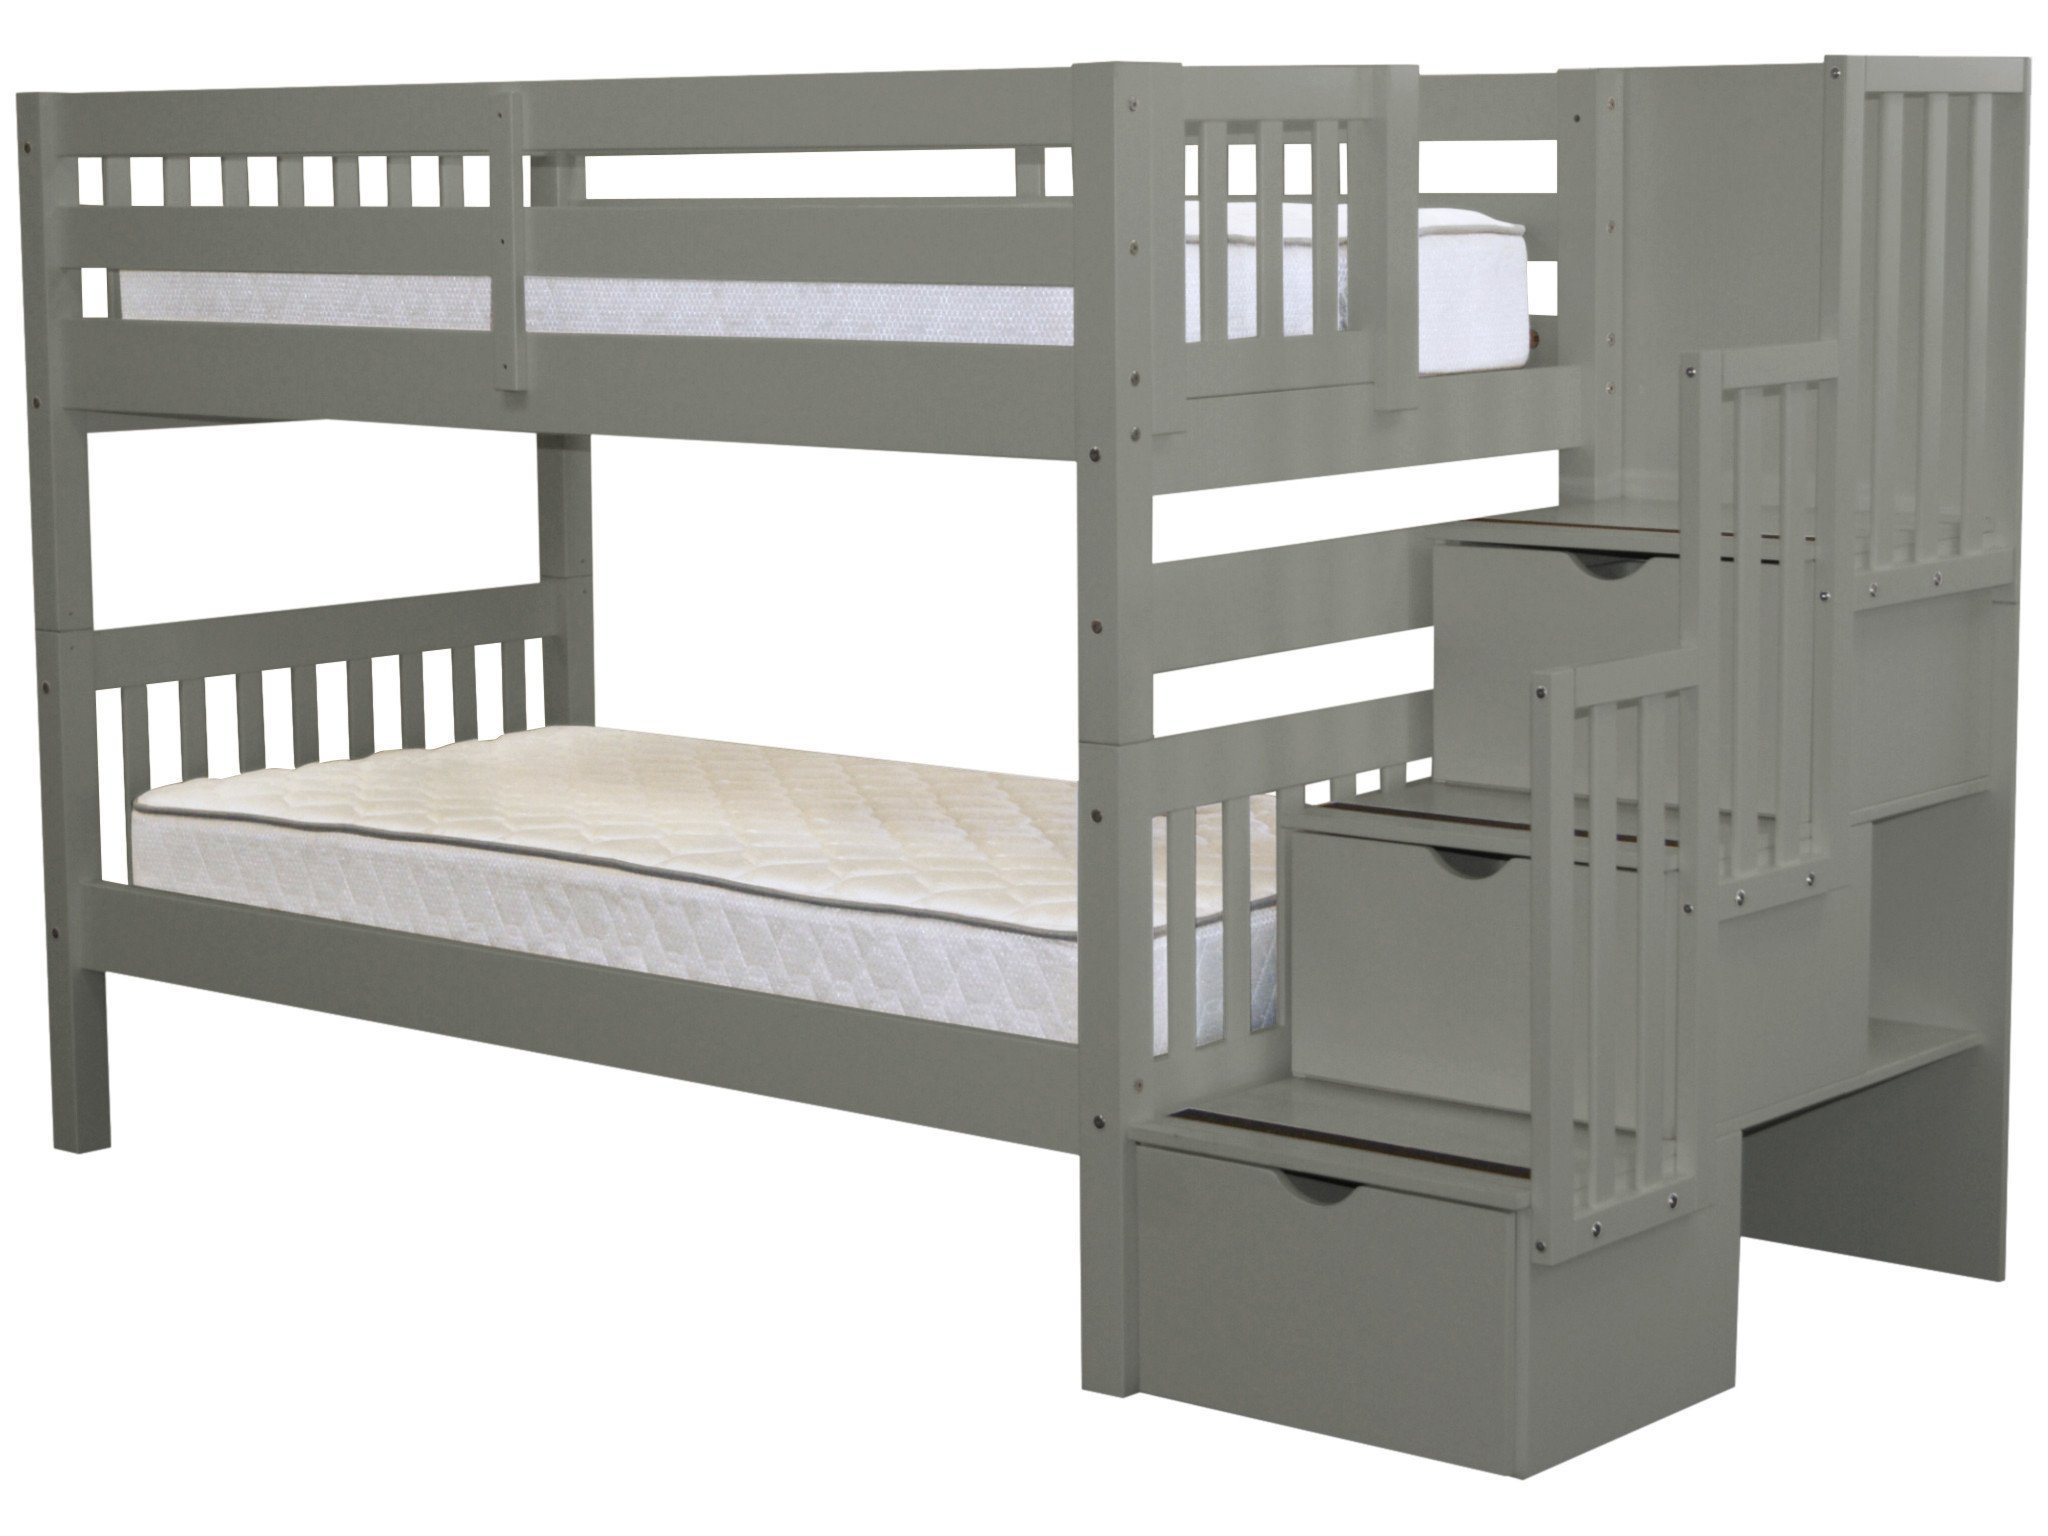 Bedz King Twin Bunk Bed with Storage by Bedz King